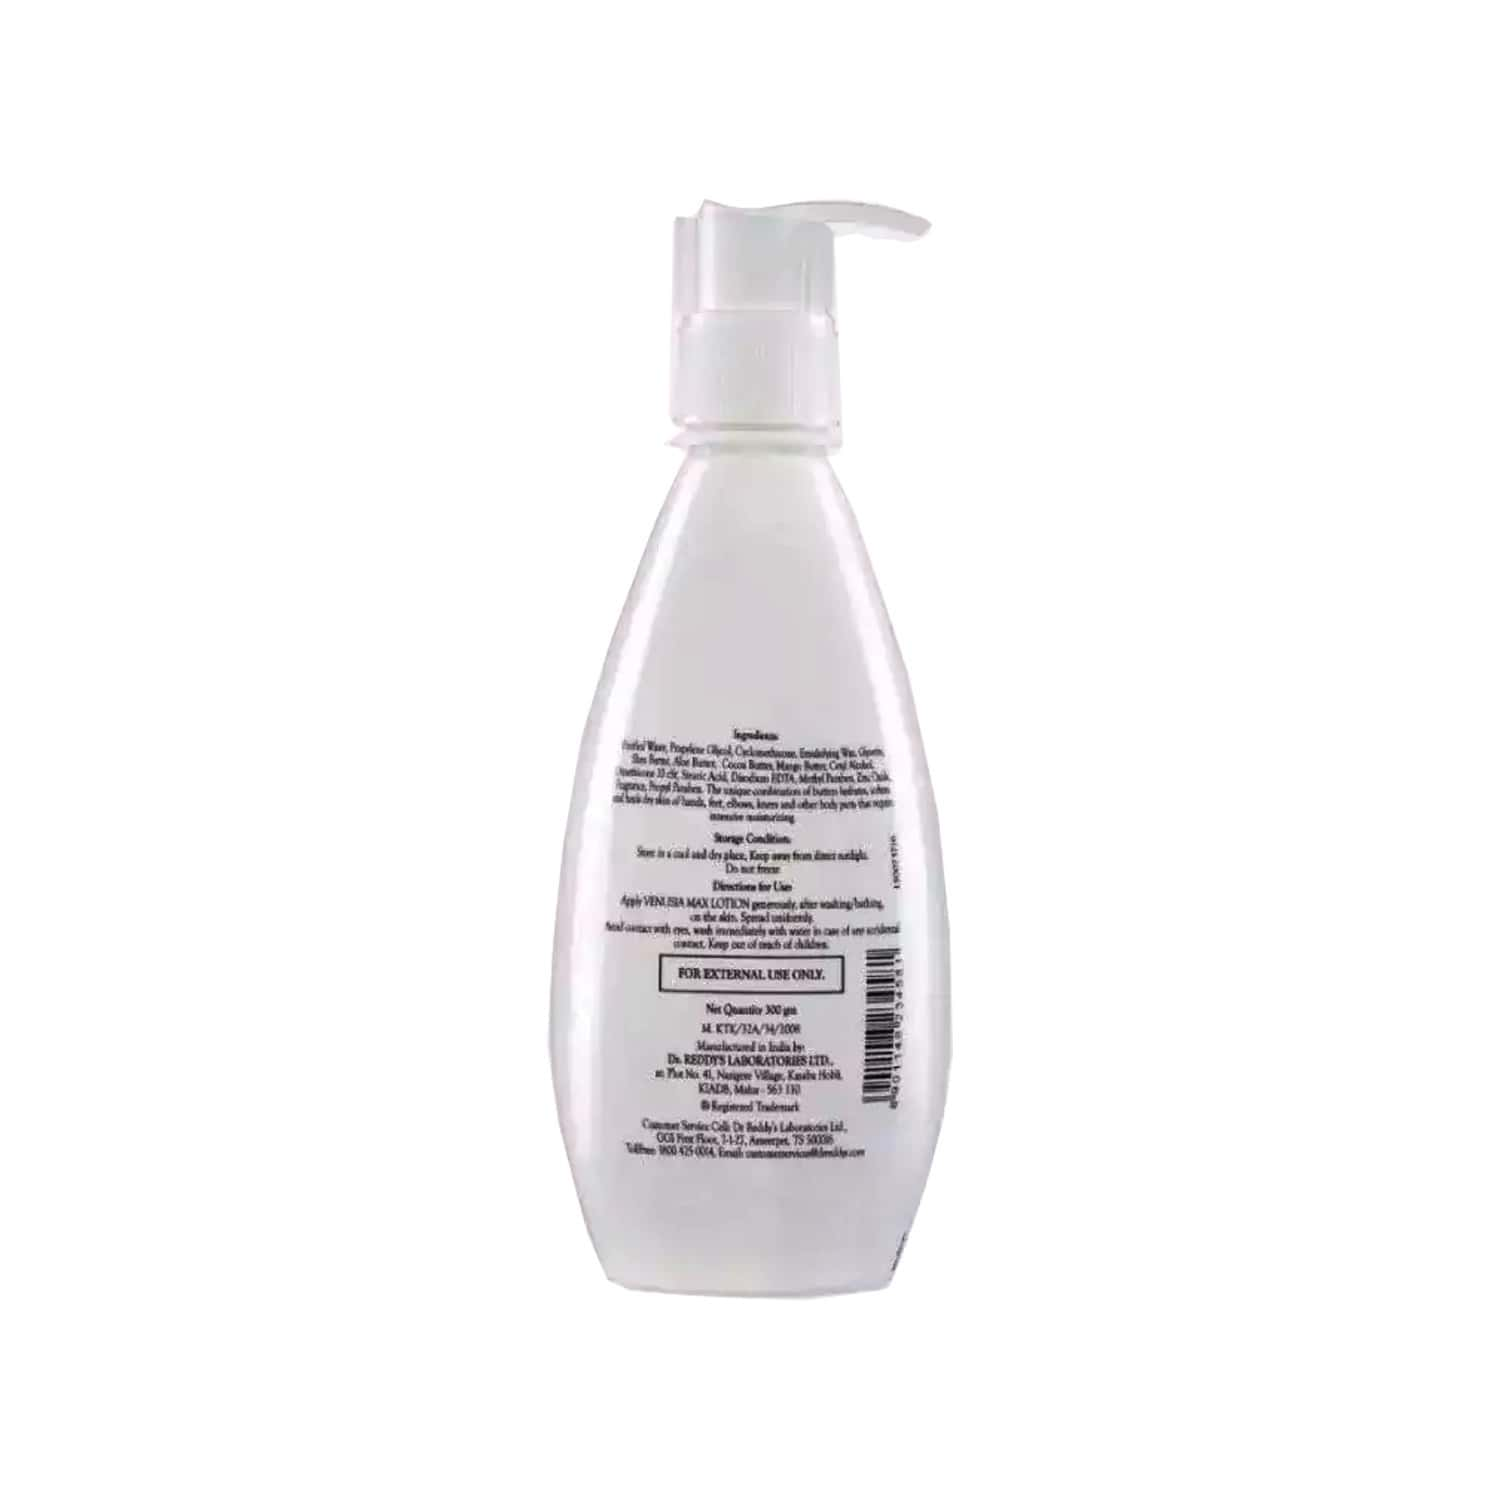 Venusia Max Intensive  Moisturizing Lotion For All Skin Types Bottle Of 300 G